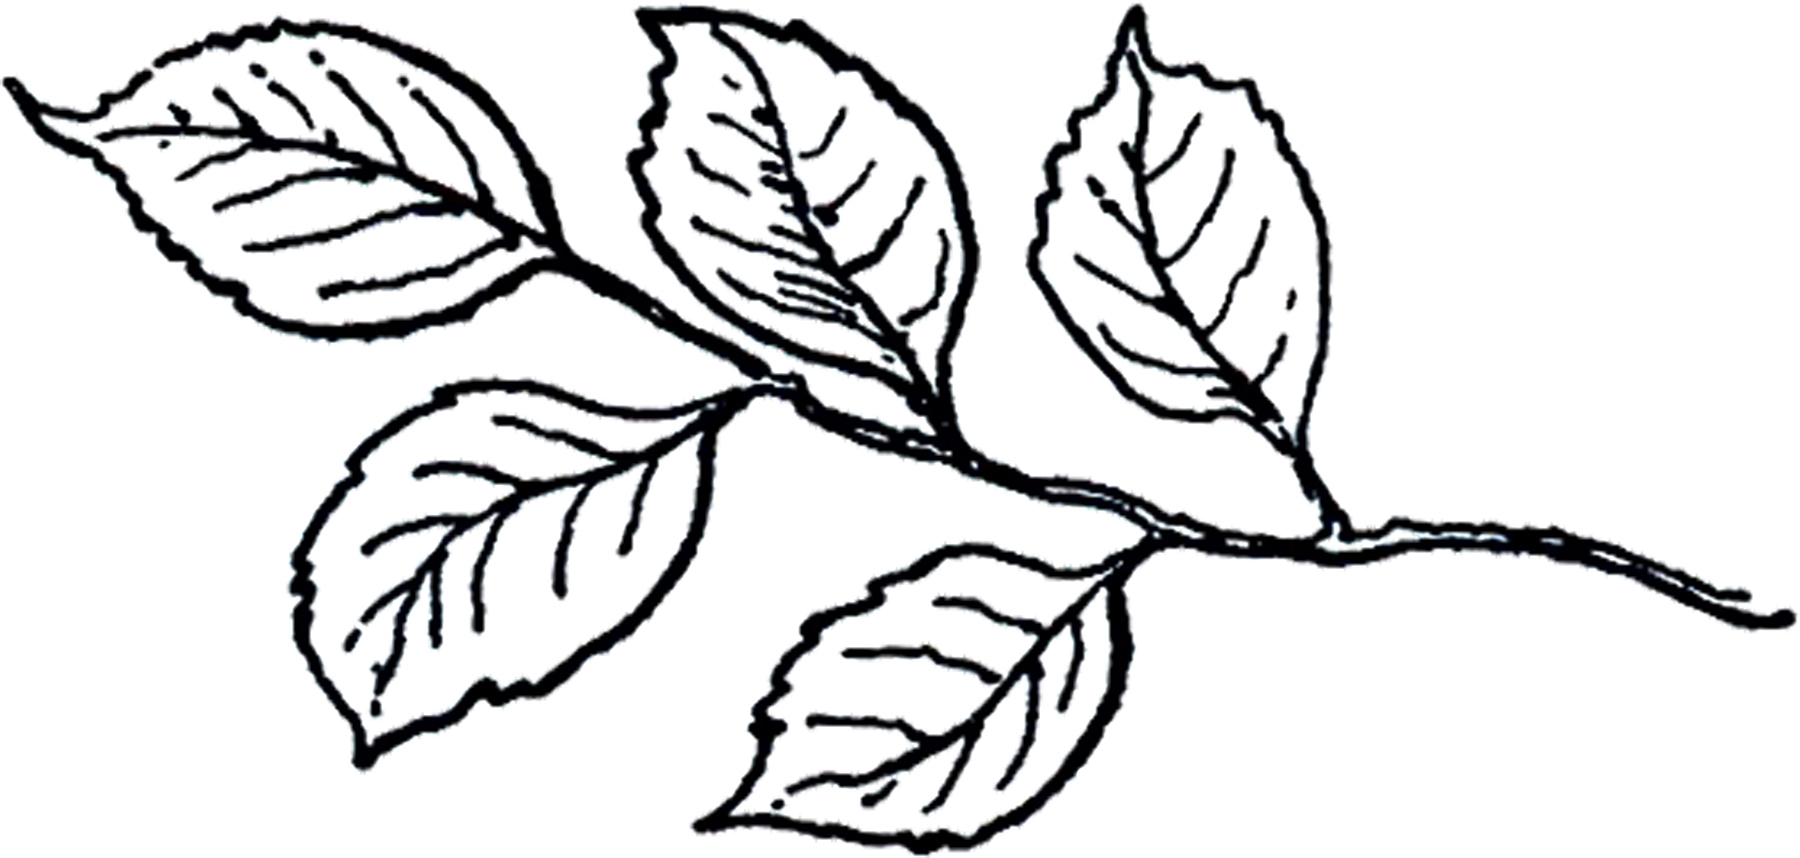 Line Drawing Clip Art : Leaves black and white drawing pixshark images